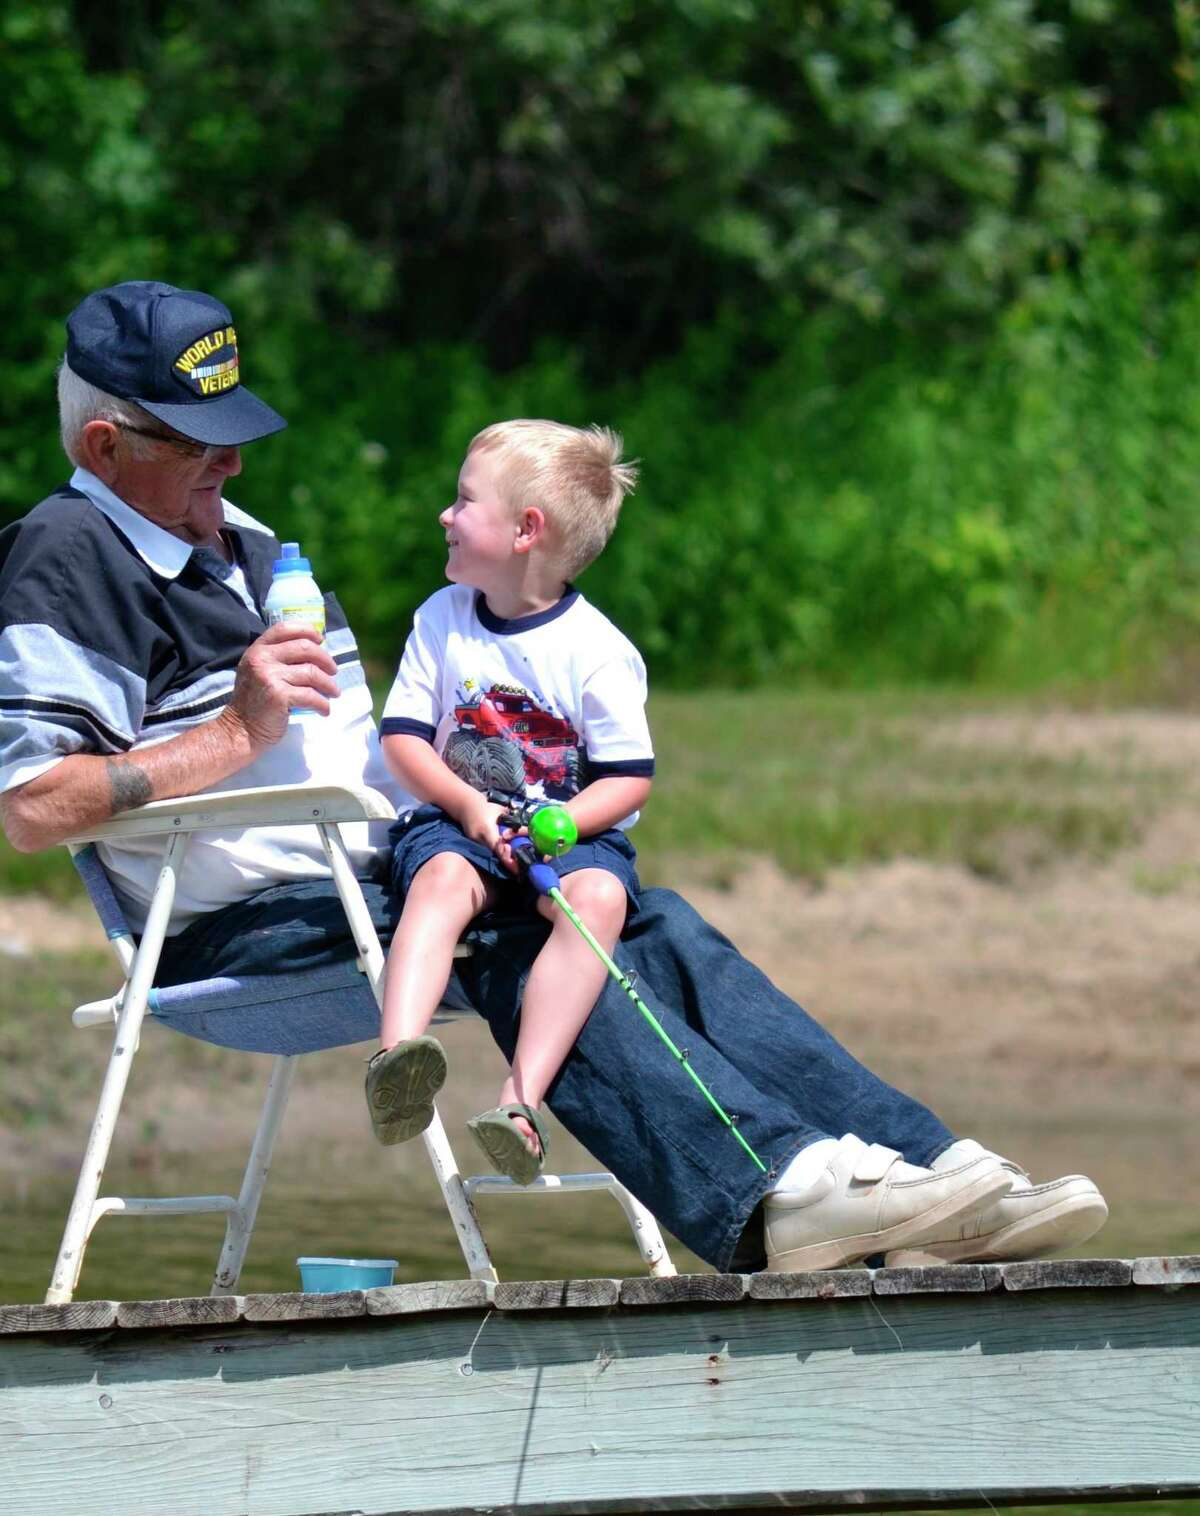 """Steve Griffin won a first-place photography award from the Association of Great Lakes Outdoor Writers for this photo that he entitled """"Great, Grandpa,"""" showing Hope resident Courtney Fillmore and his great-grandson, Nolan Curtis, fishing on a relative's dock. The photo wason the cover of the Summer 2021 issue of Michigan Out-of-Doors magazine.(Steve Griffin)"""